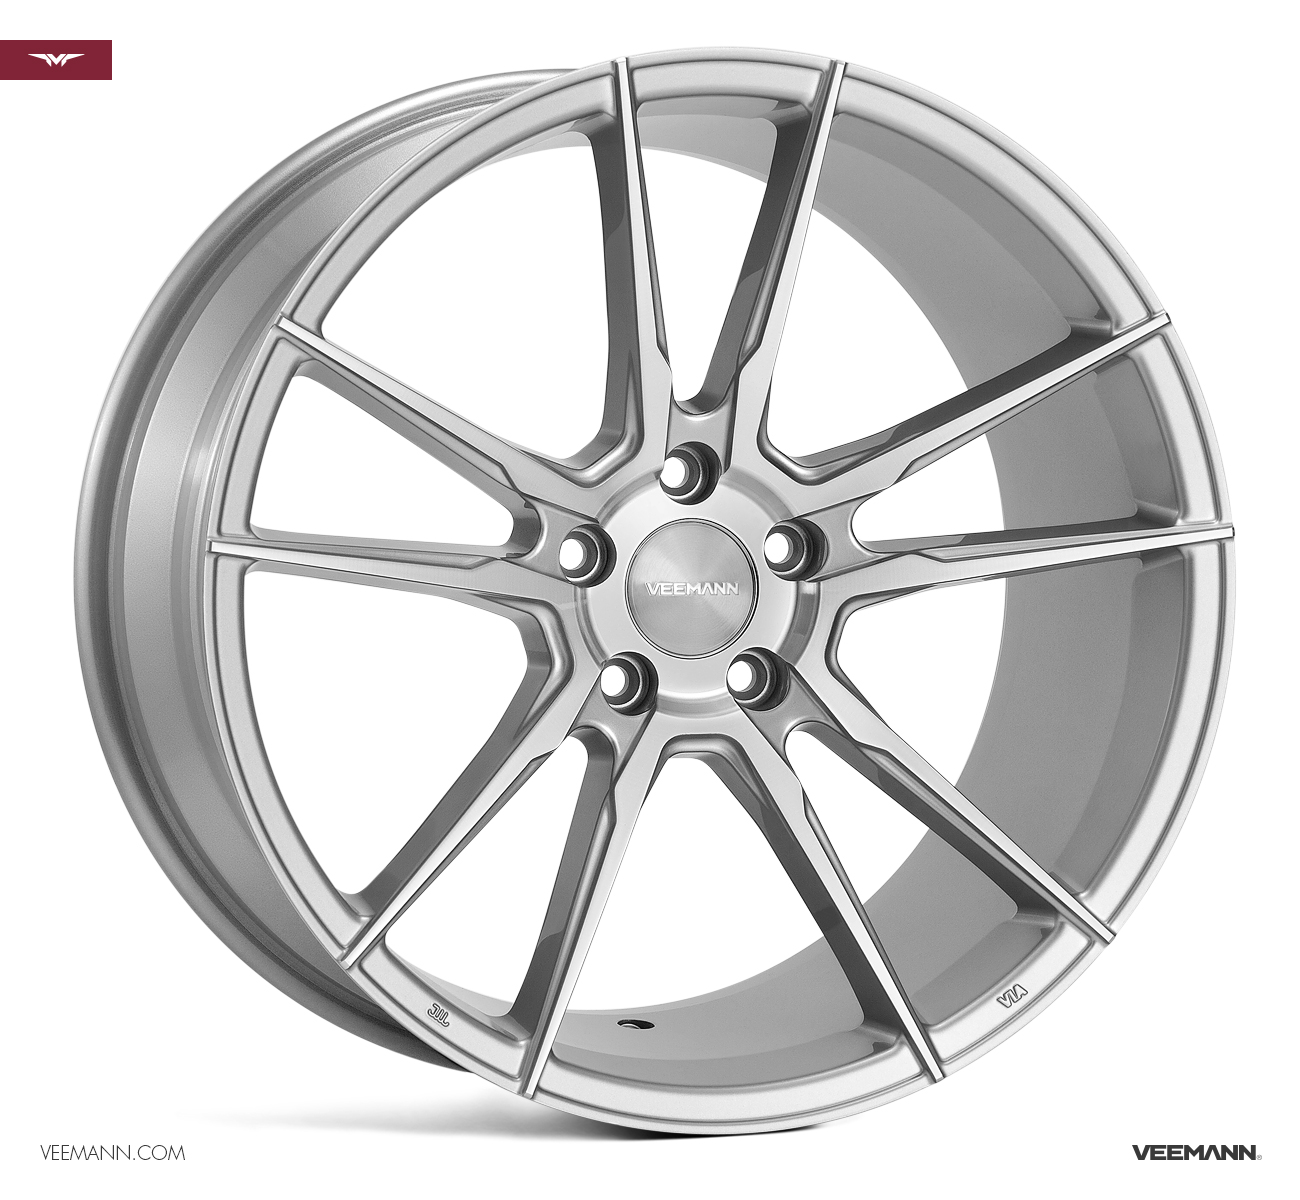 "NEW 20"" VEEMANN V-FS24 ALLOYS IN SILVER POL WITH WIDER 10"" REARS et42/40"